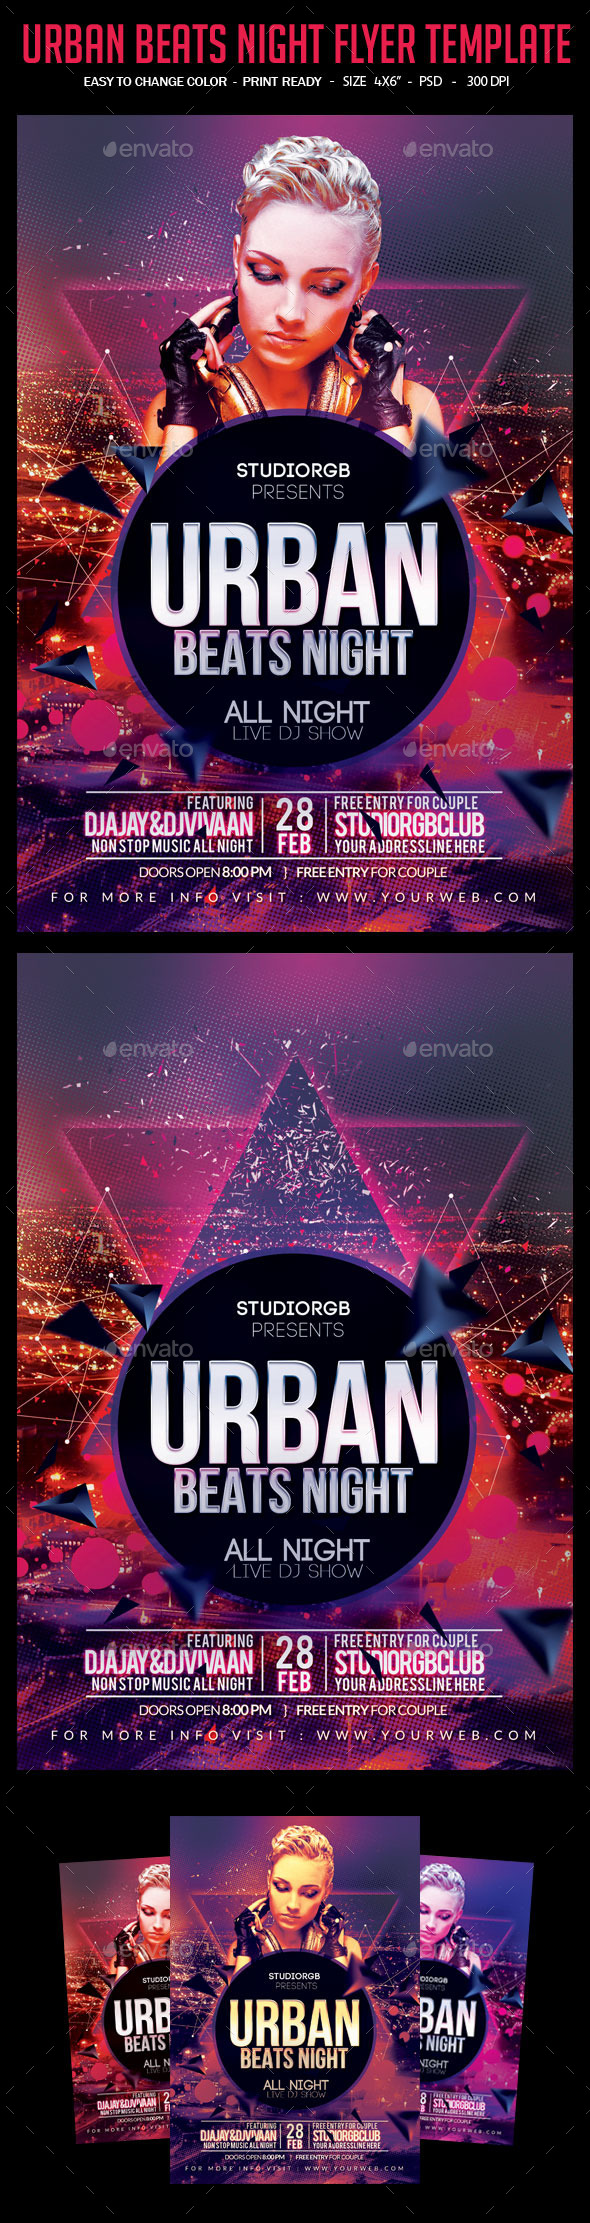 Urban Beats Night Flyer Template